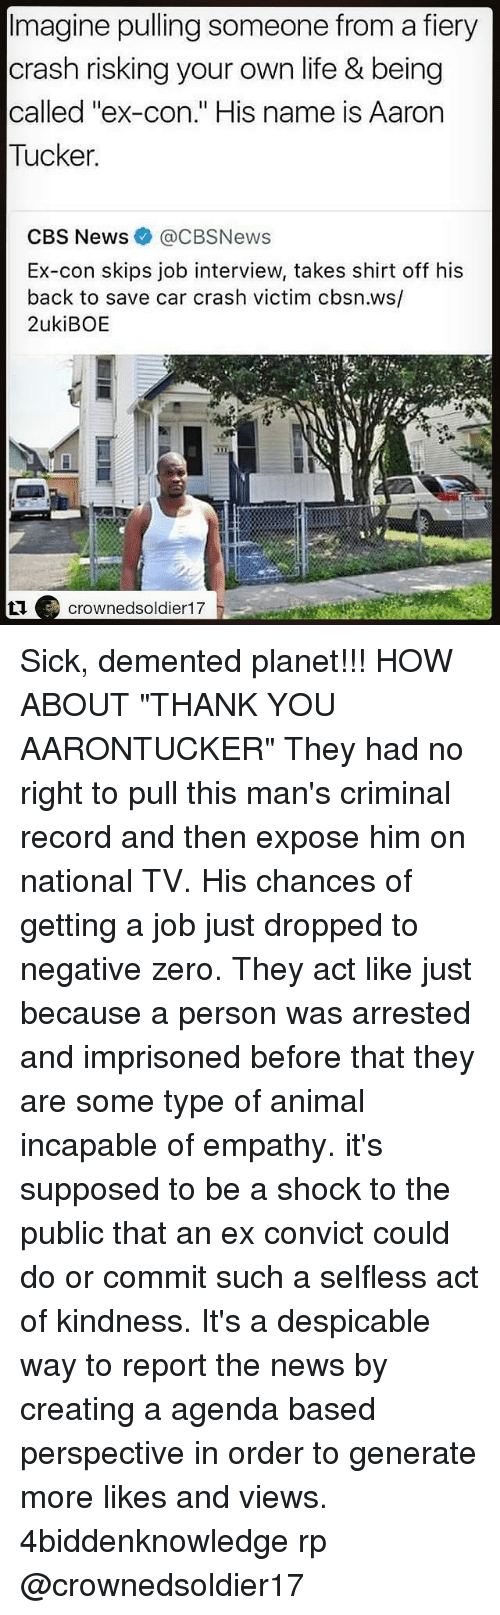 """Car Crashing: Imagine pulling someone from a fiery  crash risking your own life & being  called """"ex-con."""" His name is Aarorn  Tucker  CBS News@CBSNews  Ex-con skips job interview, takes shirt off his  back to save car crash victim cbsn.ws/  2ukiBOE  crownedsoldier17 Sick, demented planet!!! HOW ABOUT """"THANK YOU AARONTUCKER"""" They had no right to pull this man's criminal record and then expose him on national TV. His chances of getting a job just dropped to negative zero. They act like just because a person was arrested and imprisoned before that they are some type of animal incapable of empathy. it's supposed to be a shock to the public that an ex convict could do or commit such a selfless act of kindness. It's a despicable way to report the news by creating a agenda based perspective in order to generate more likes and views. 4biddenknowledge rp @crownedsoldier17"""